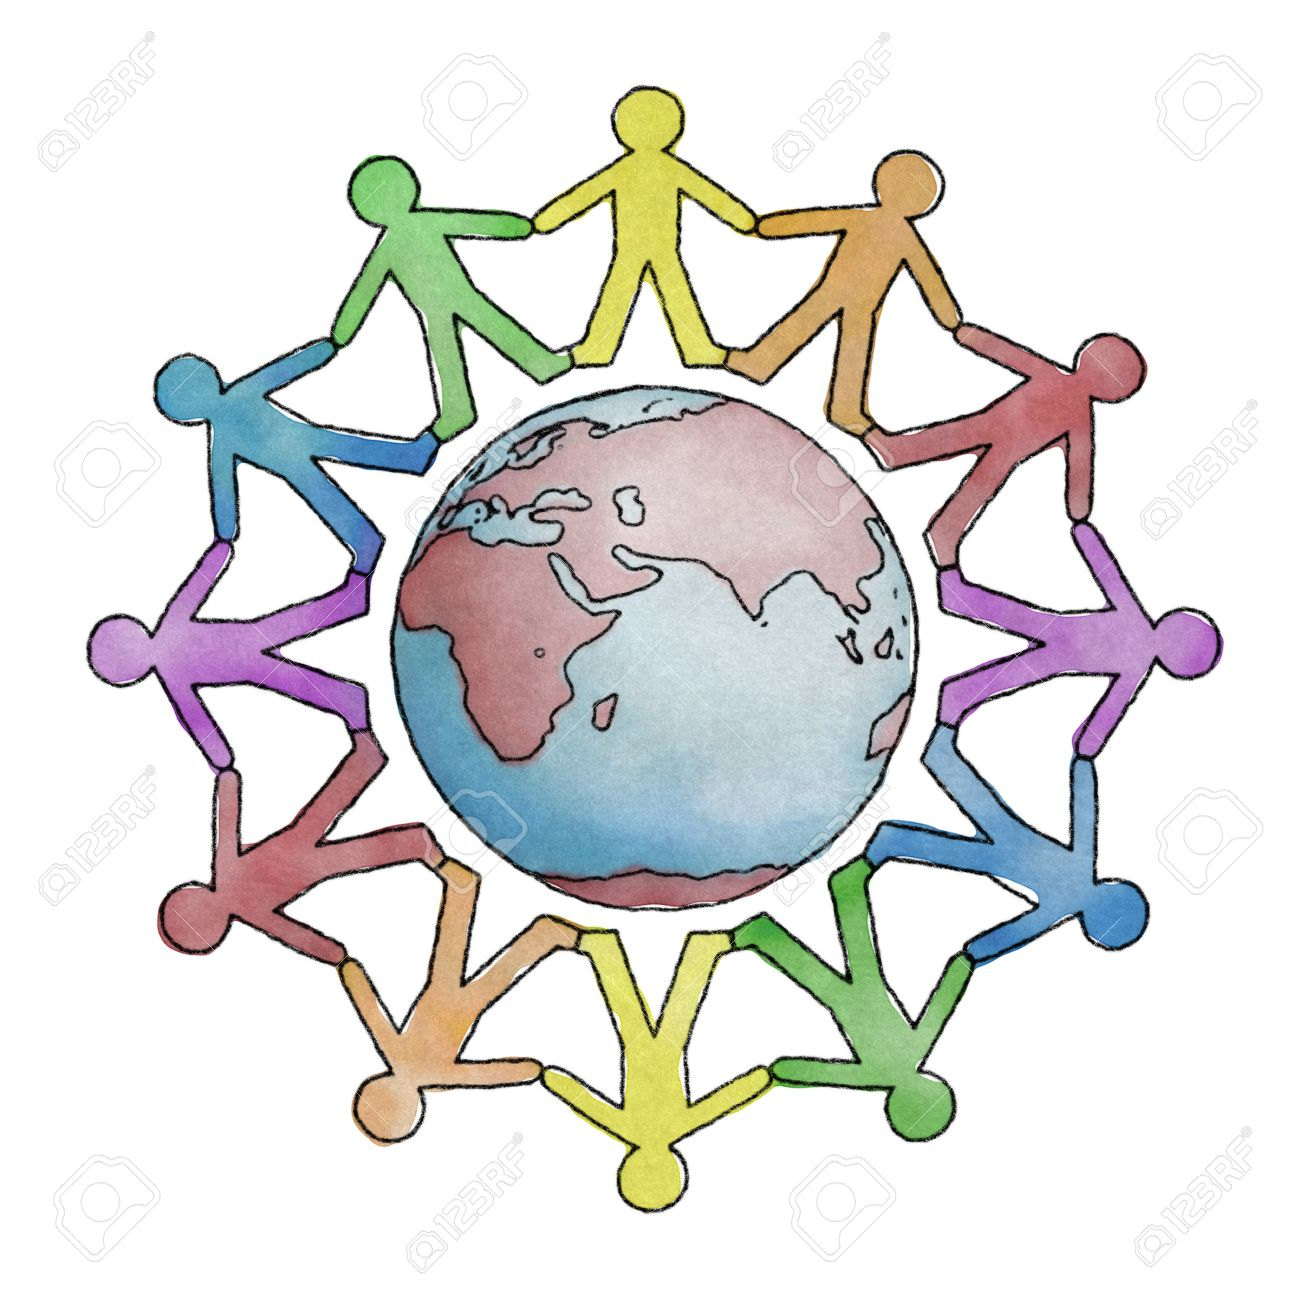 Hand drawn Earth with cutout people holding hands - 30657078